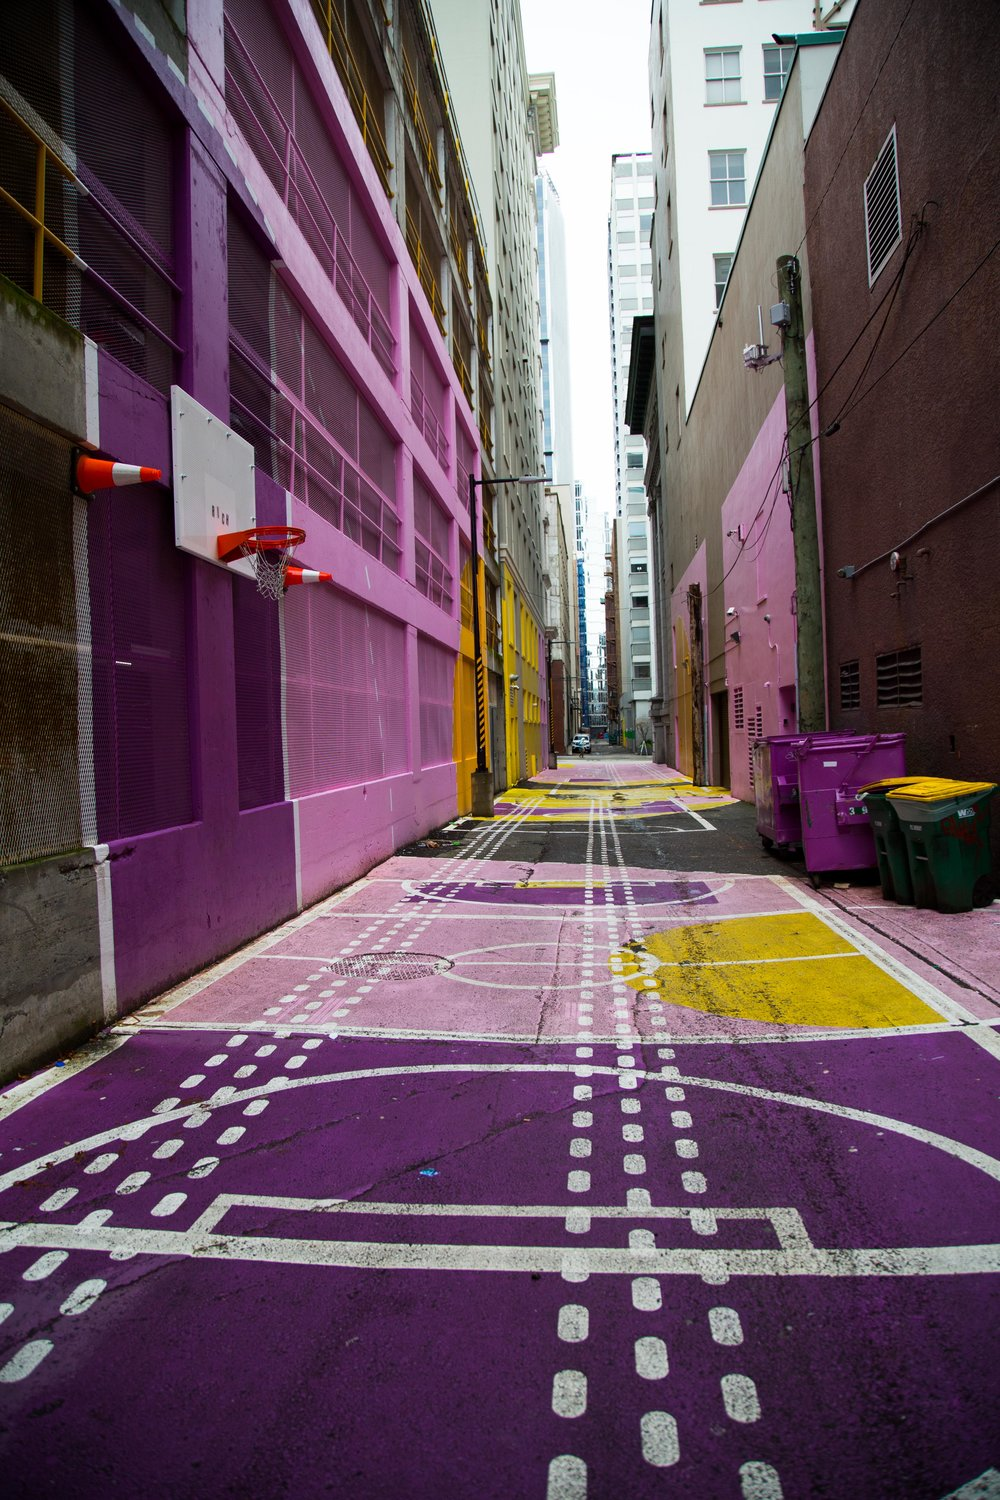 Alleyway Basketball Court in Vancouver